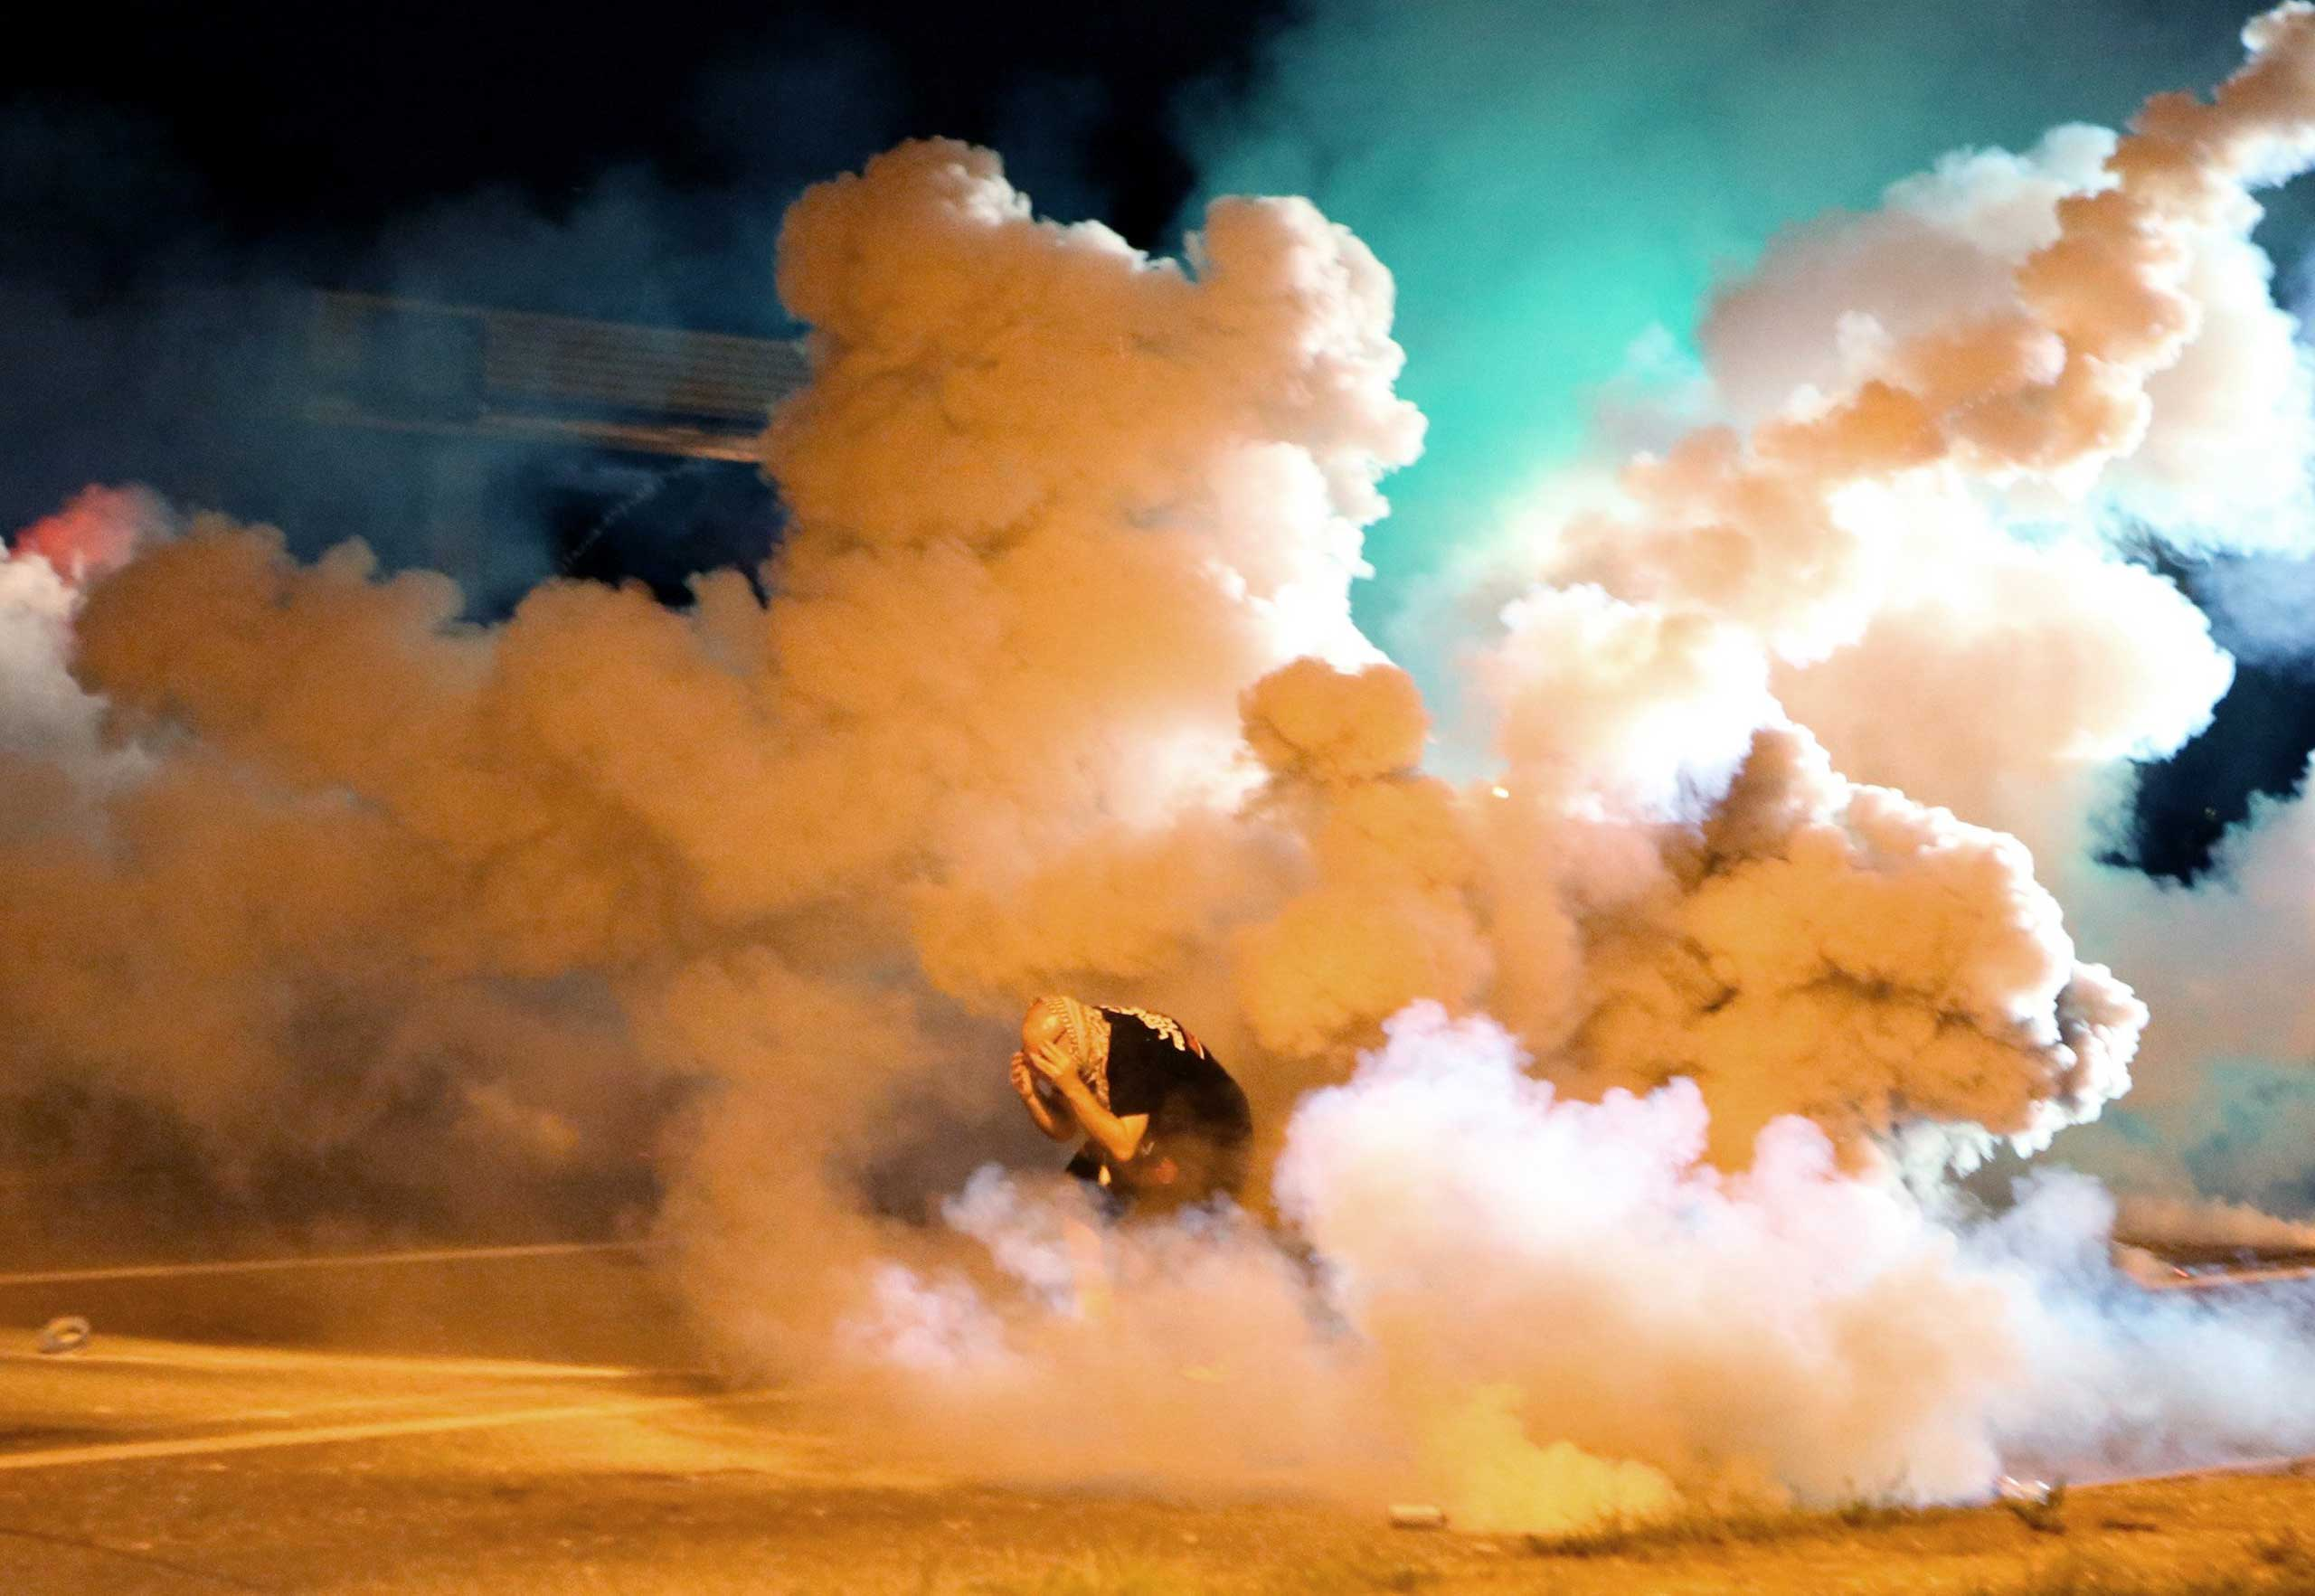 A protester takes shelter from billowing smoke during demonstrations in Ferguson on Aug. 13, 2014. Such scenes were relatively common during the first week of protests.